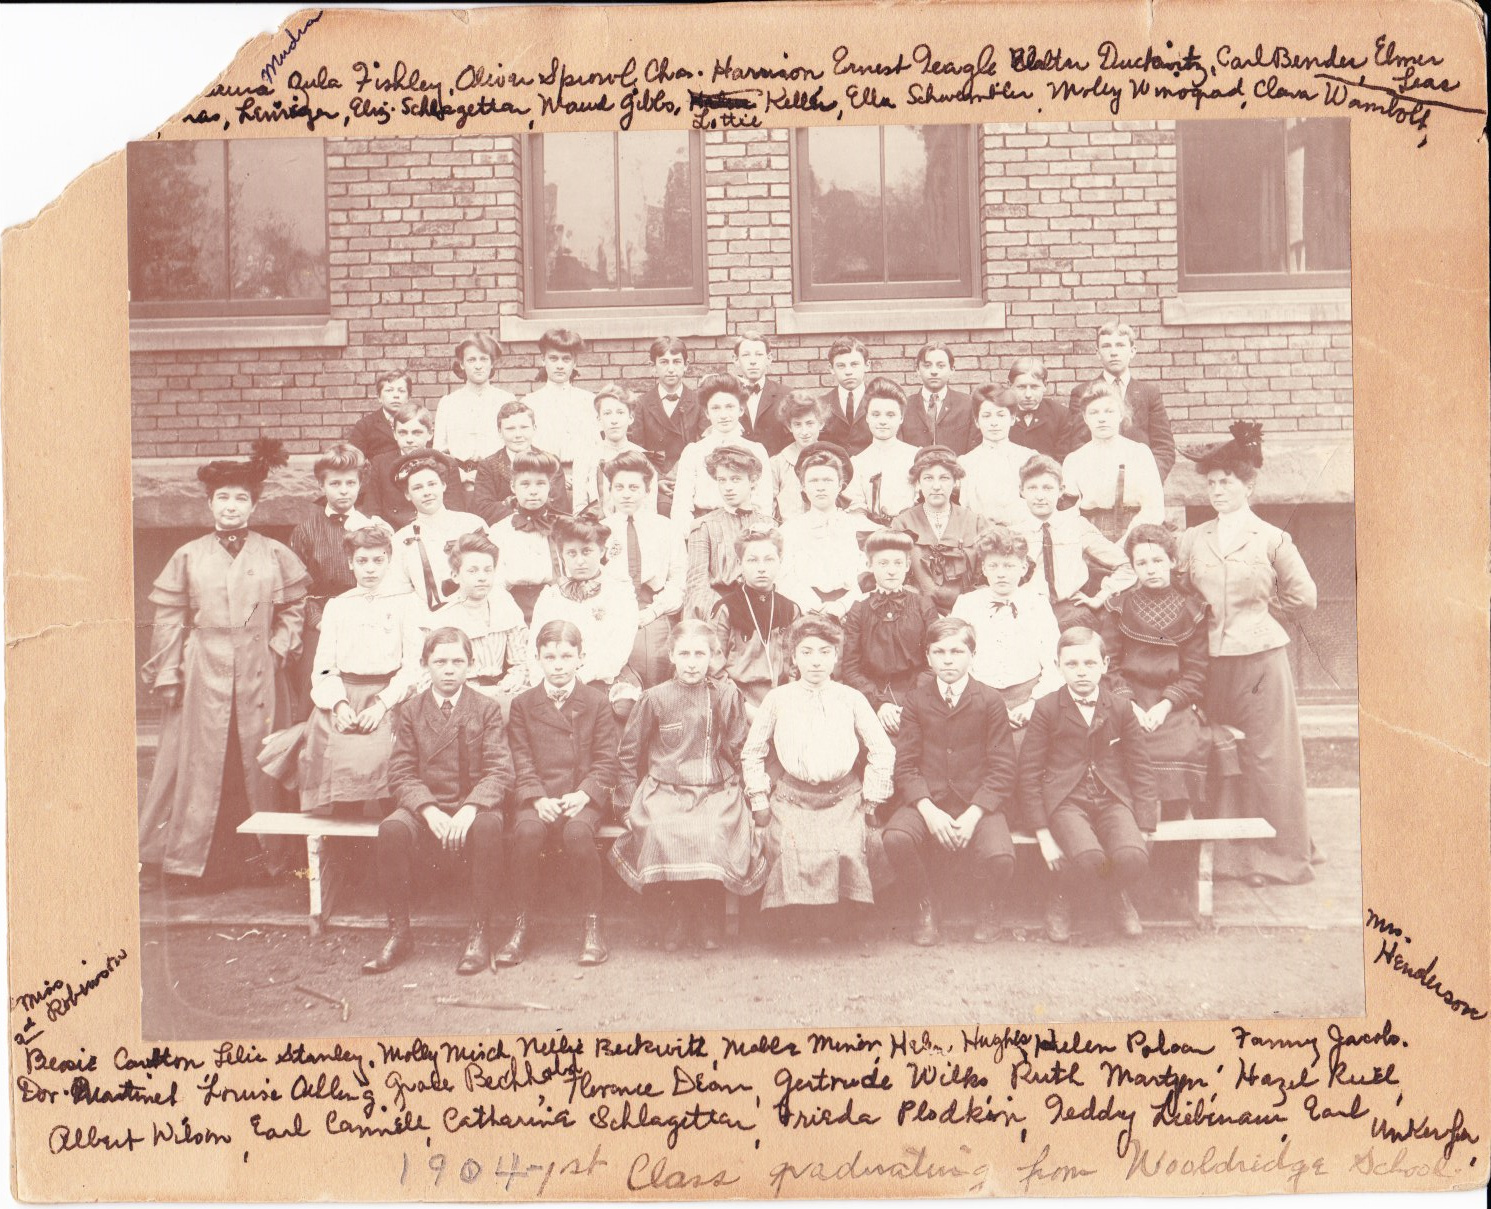 Another of the Treasures.  This is the first graduating class from Wooldridge School in Cleveland, Ohio.